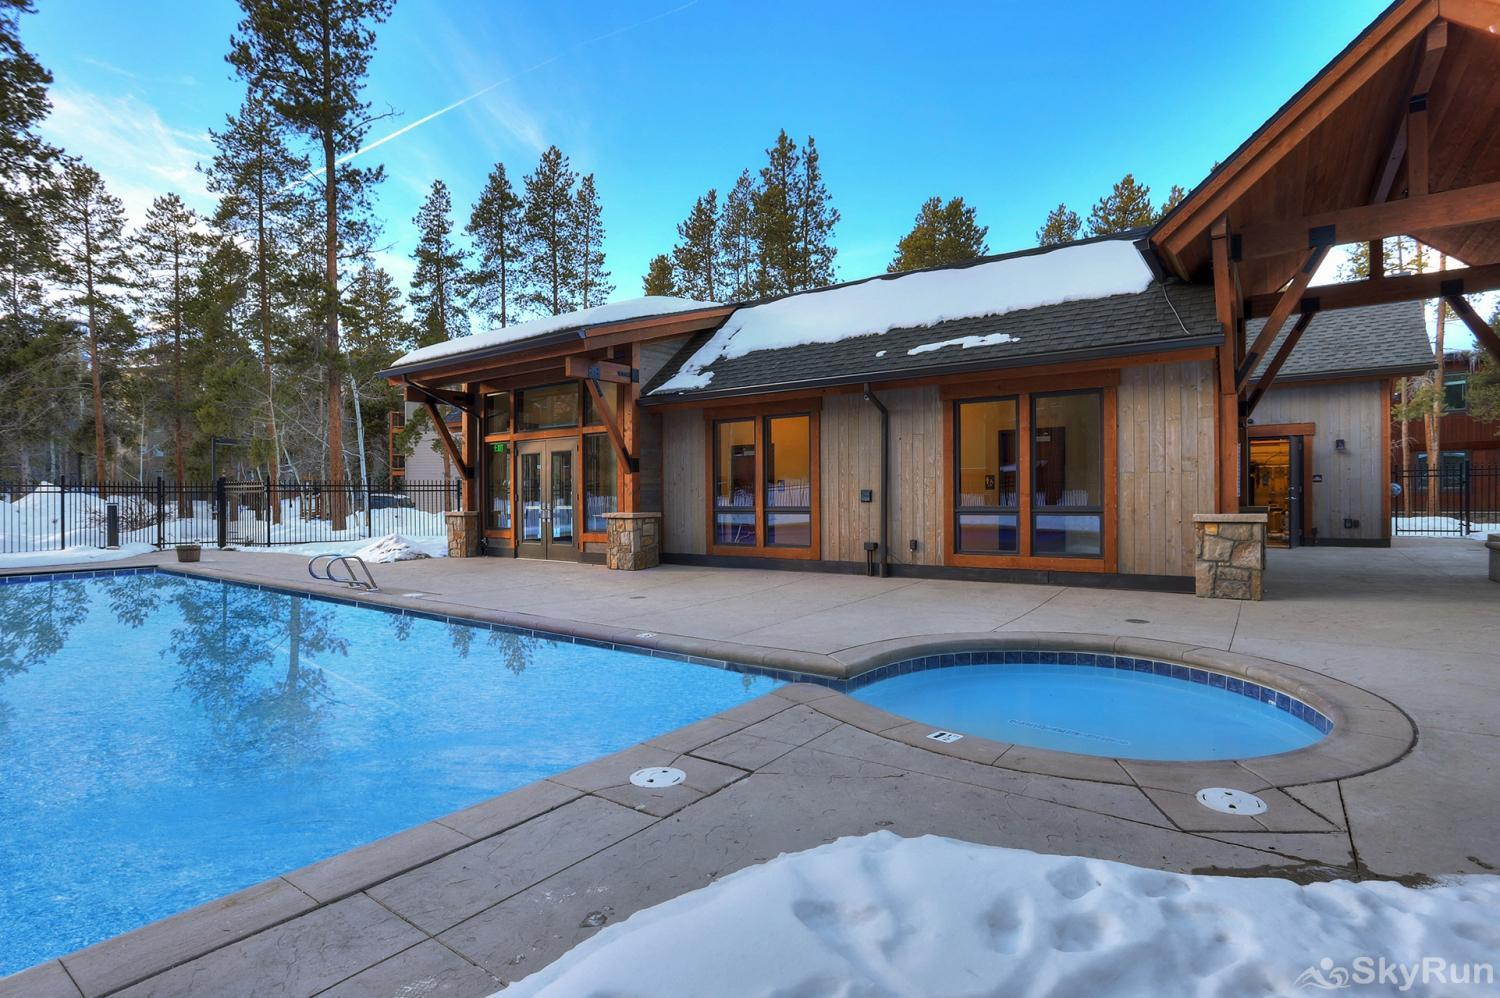 The Lift C212 Outdoor heated pool and hot tubs at the Columbine Pool Complex